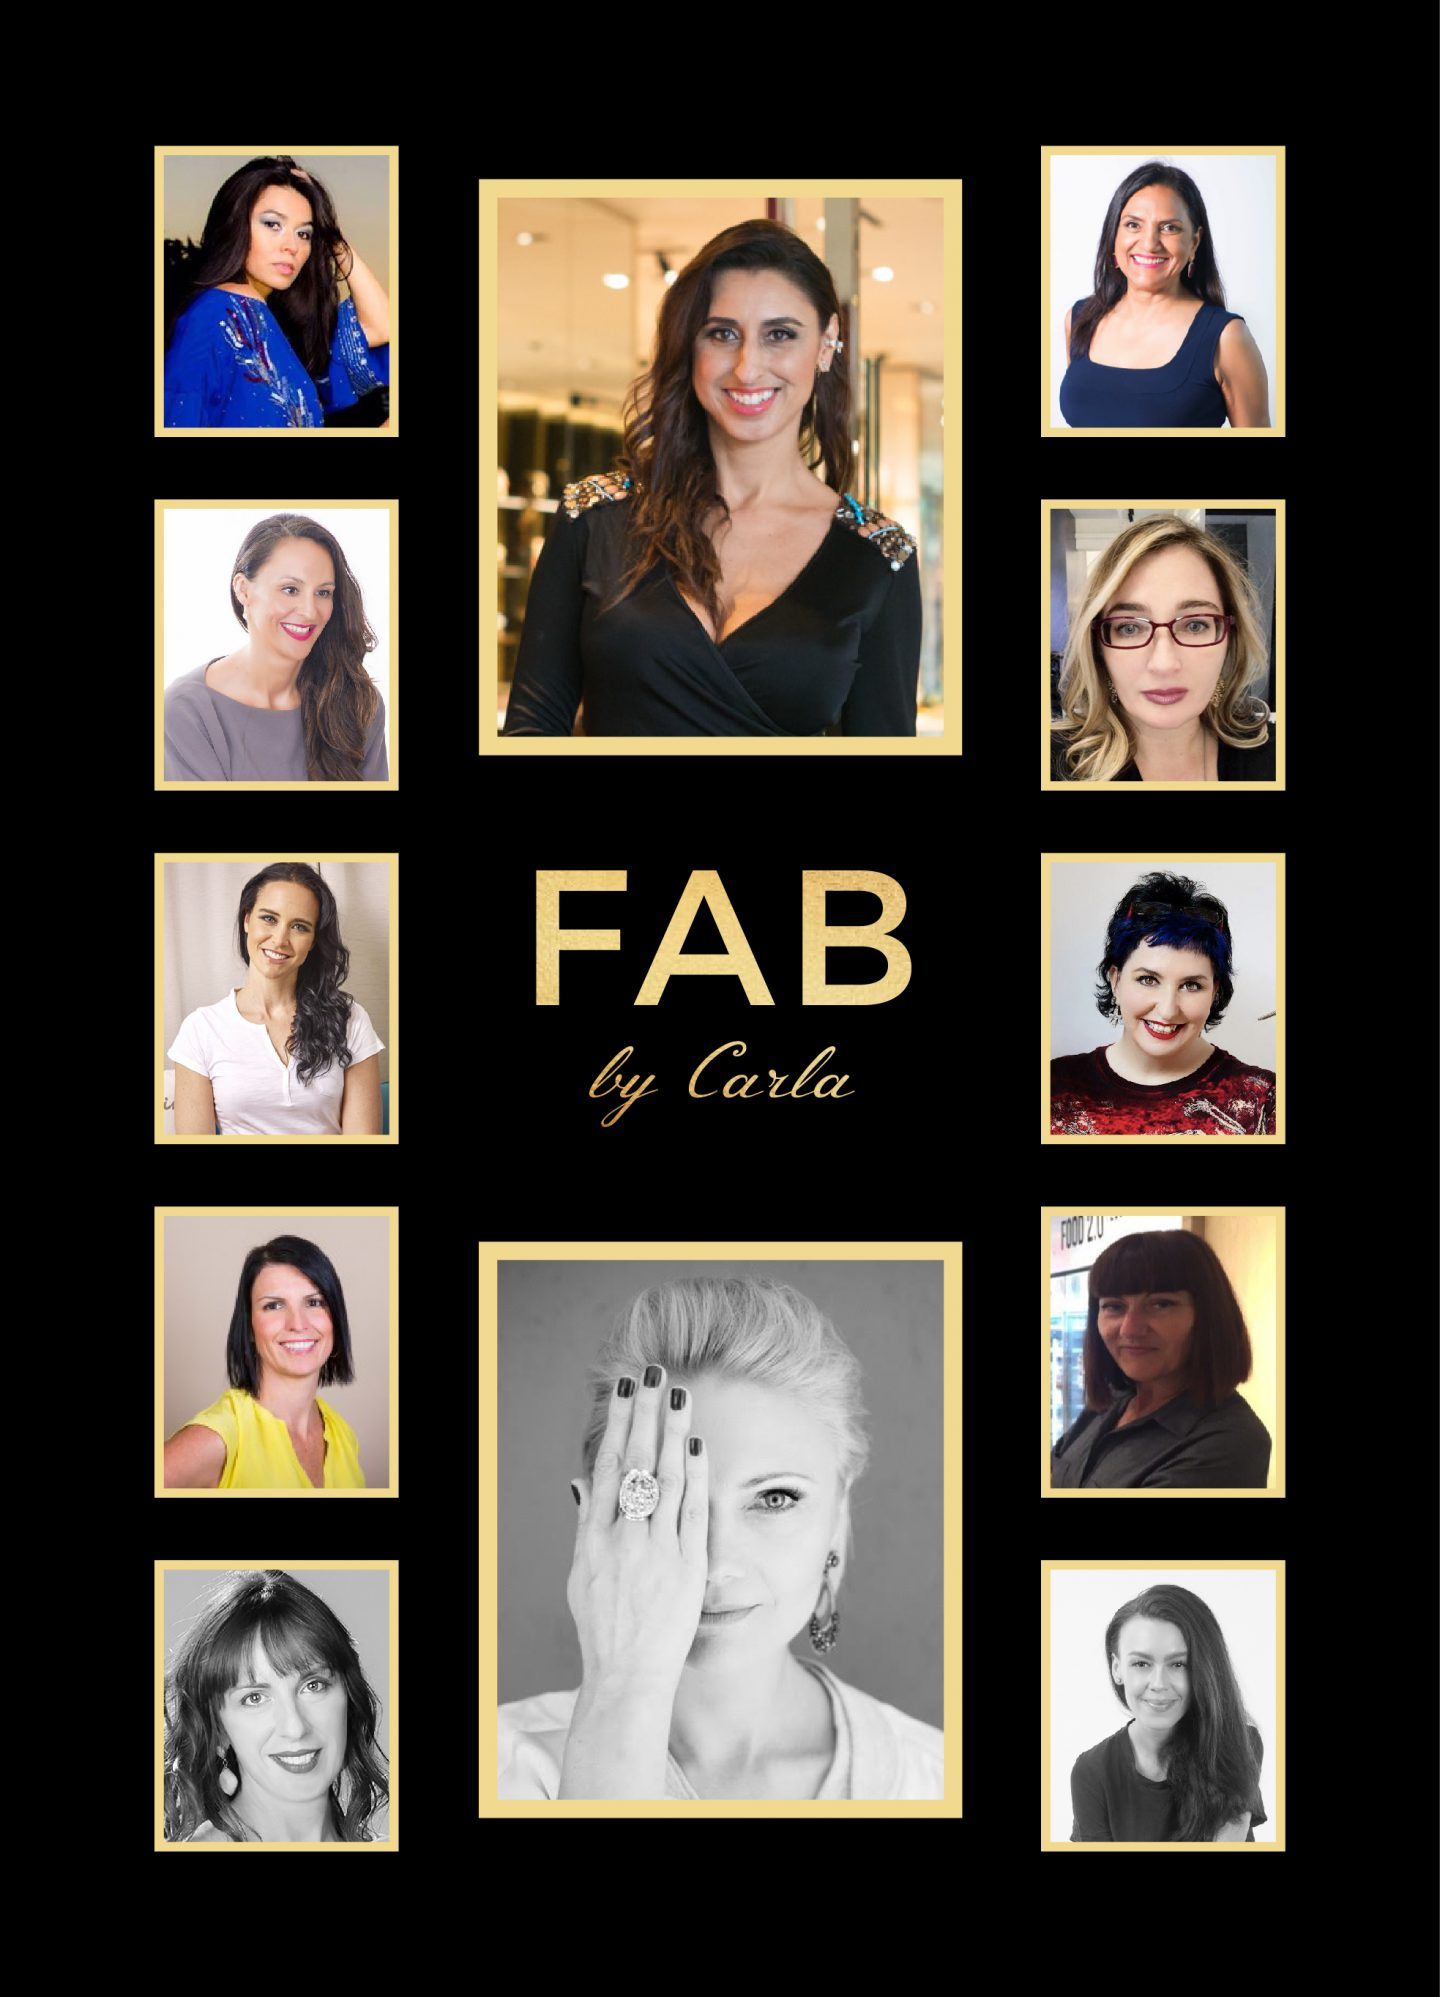 FaB for Fabulous and Busy